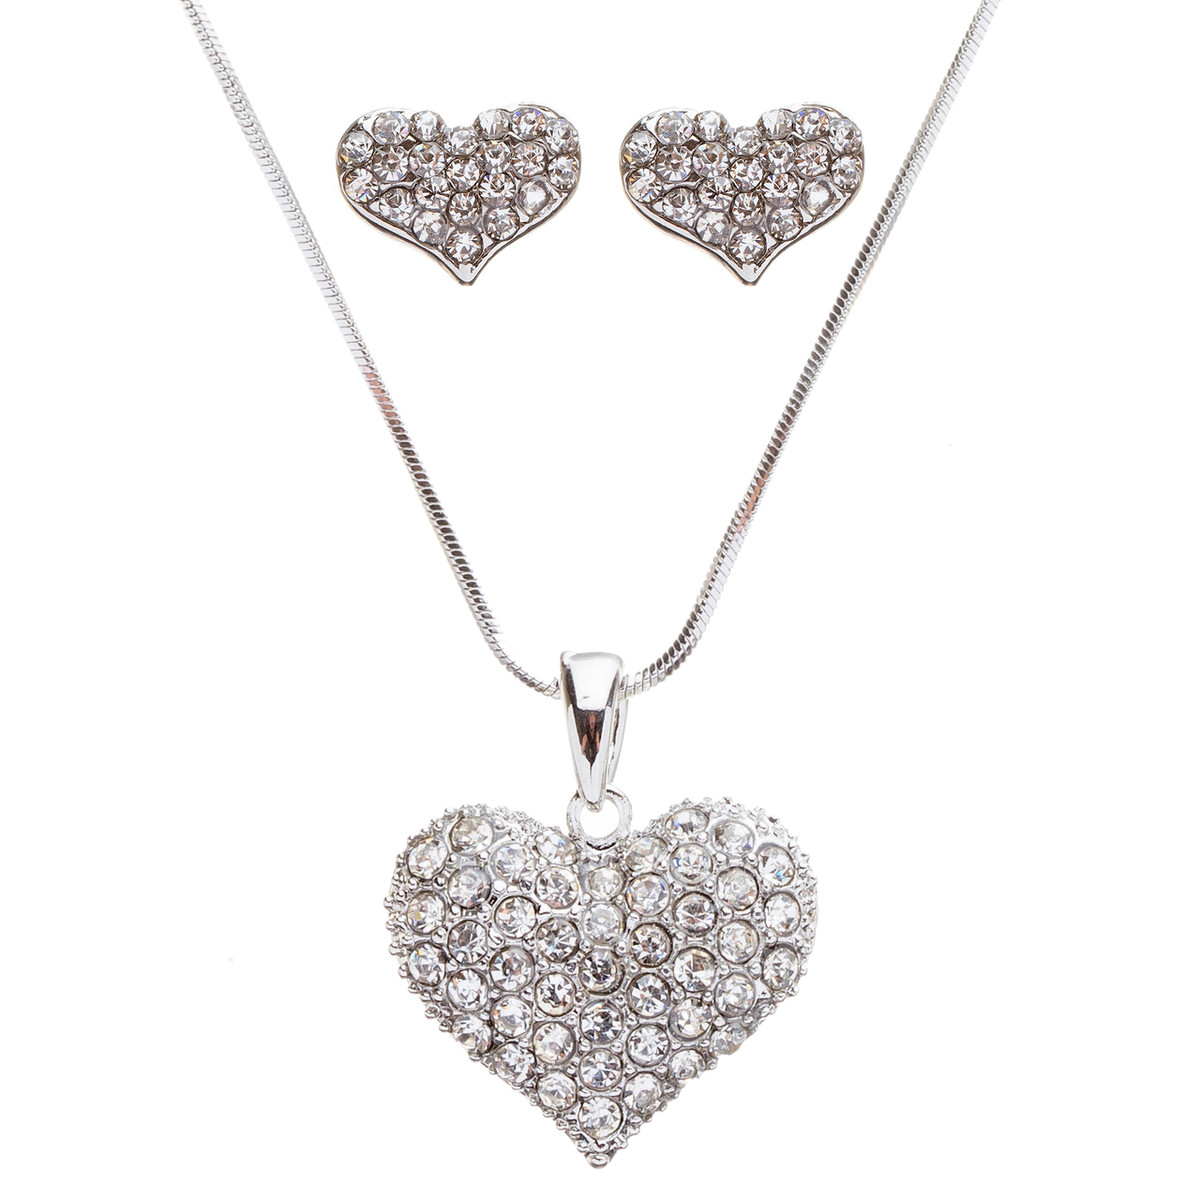 necklace present sterling image products product valentine s silver agxpress valentines day